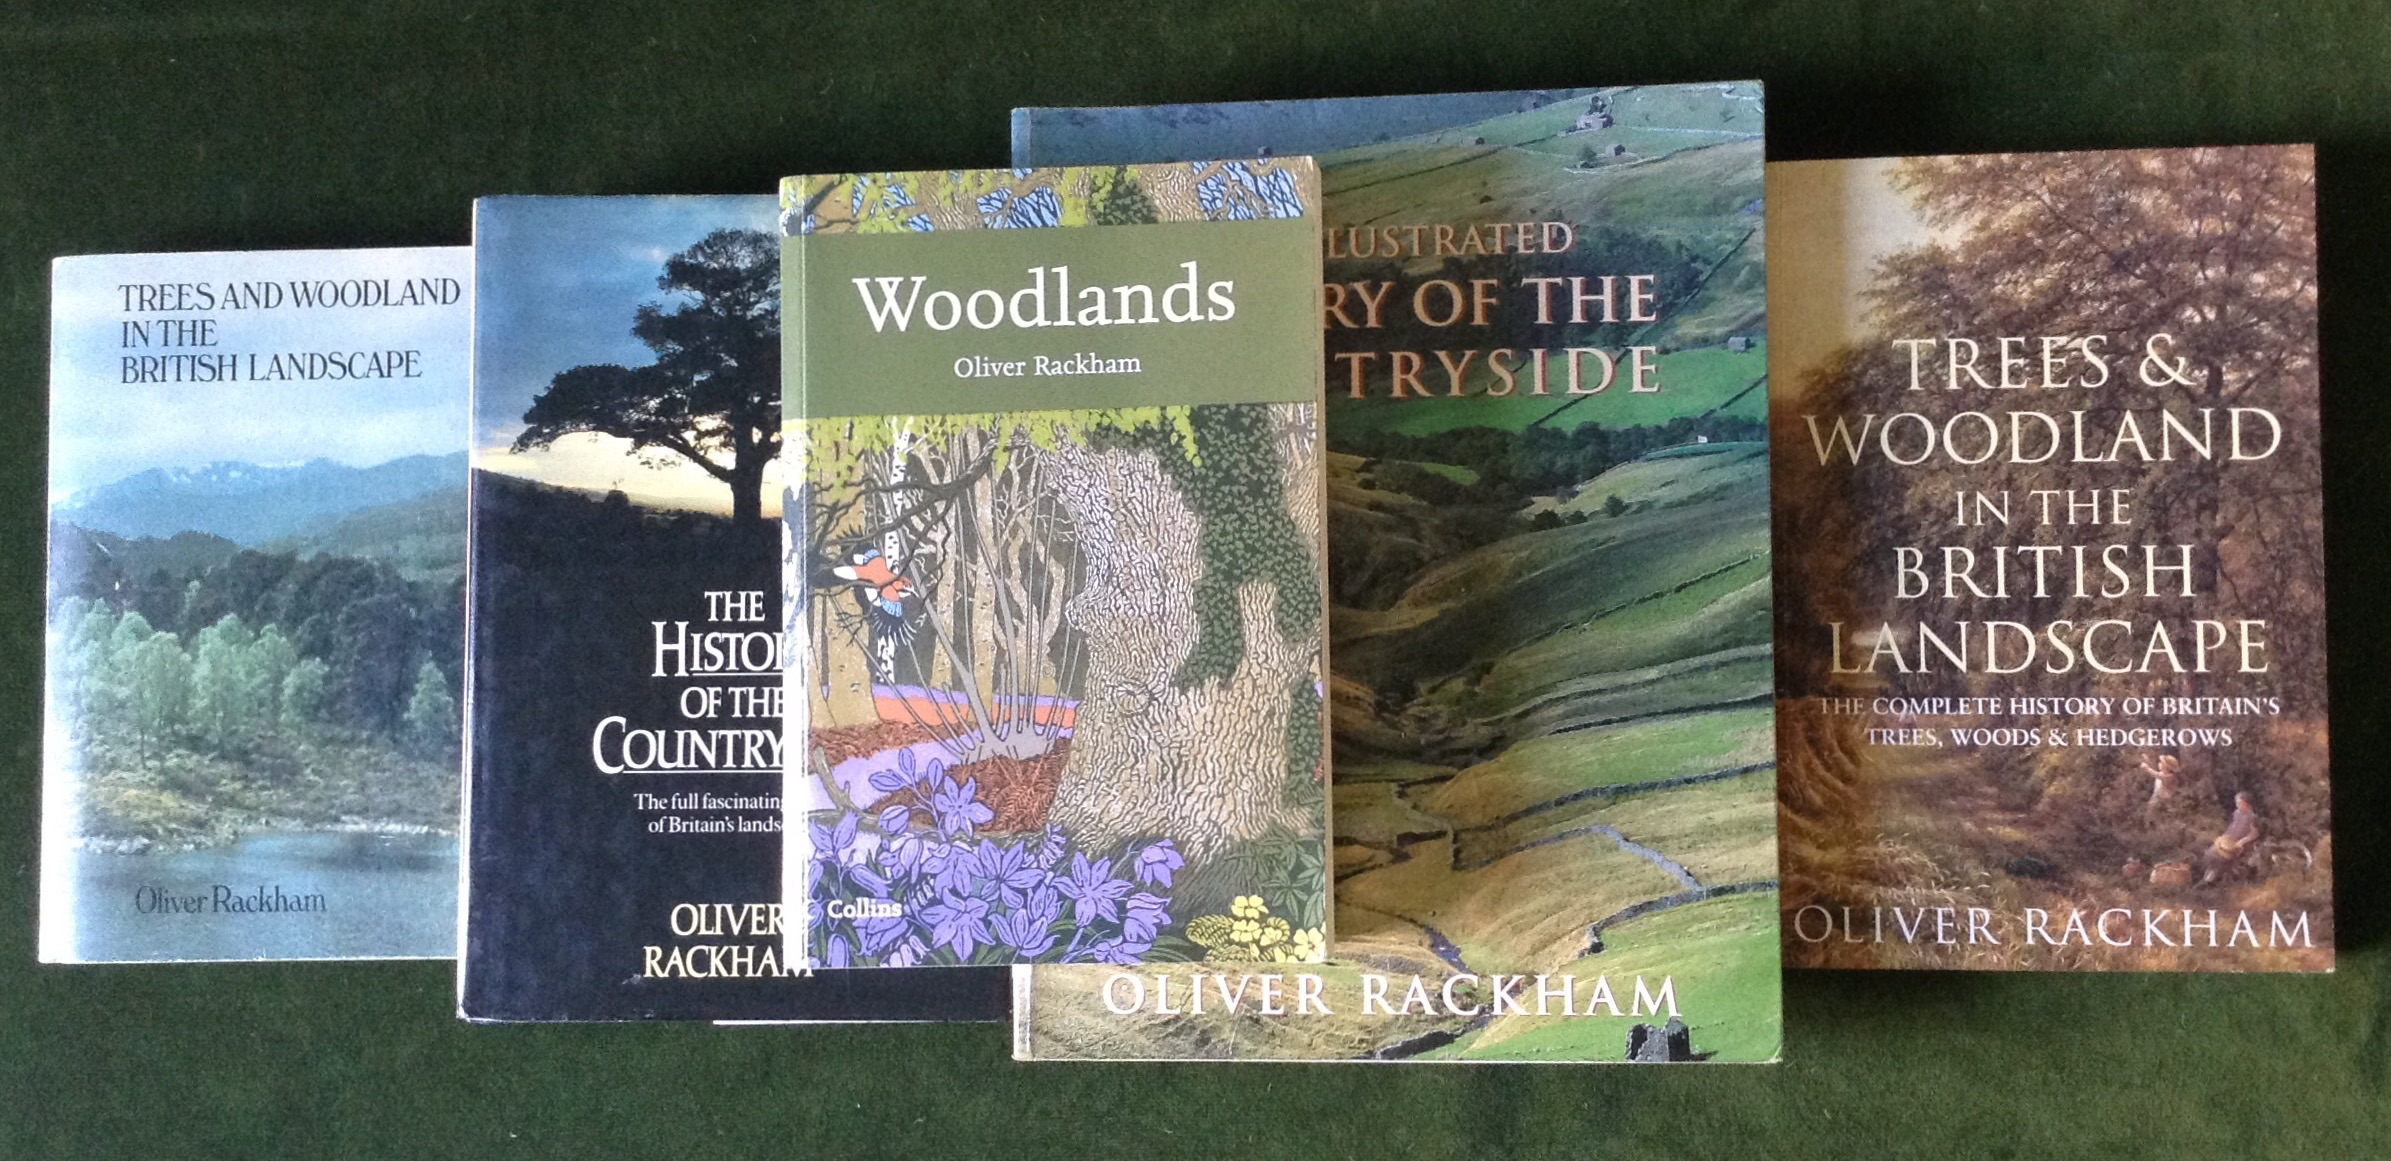 Books by Oliver Rackham, including the 100th Collins New Naturalist on Woodlands